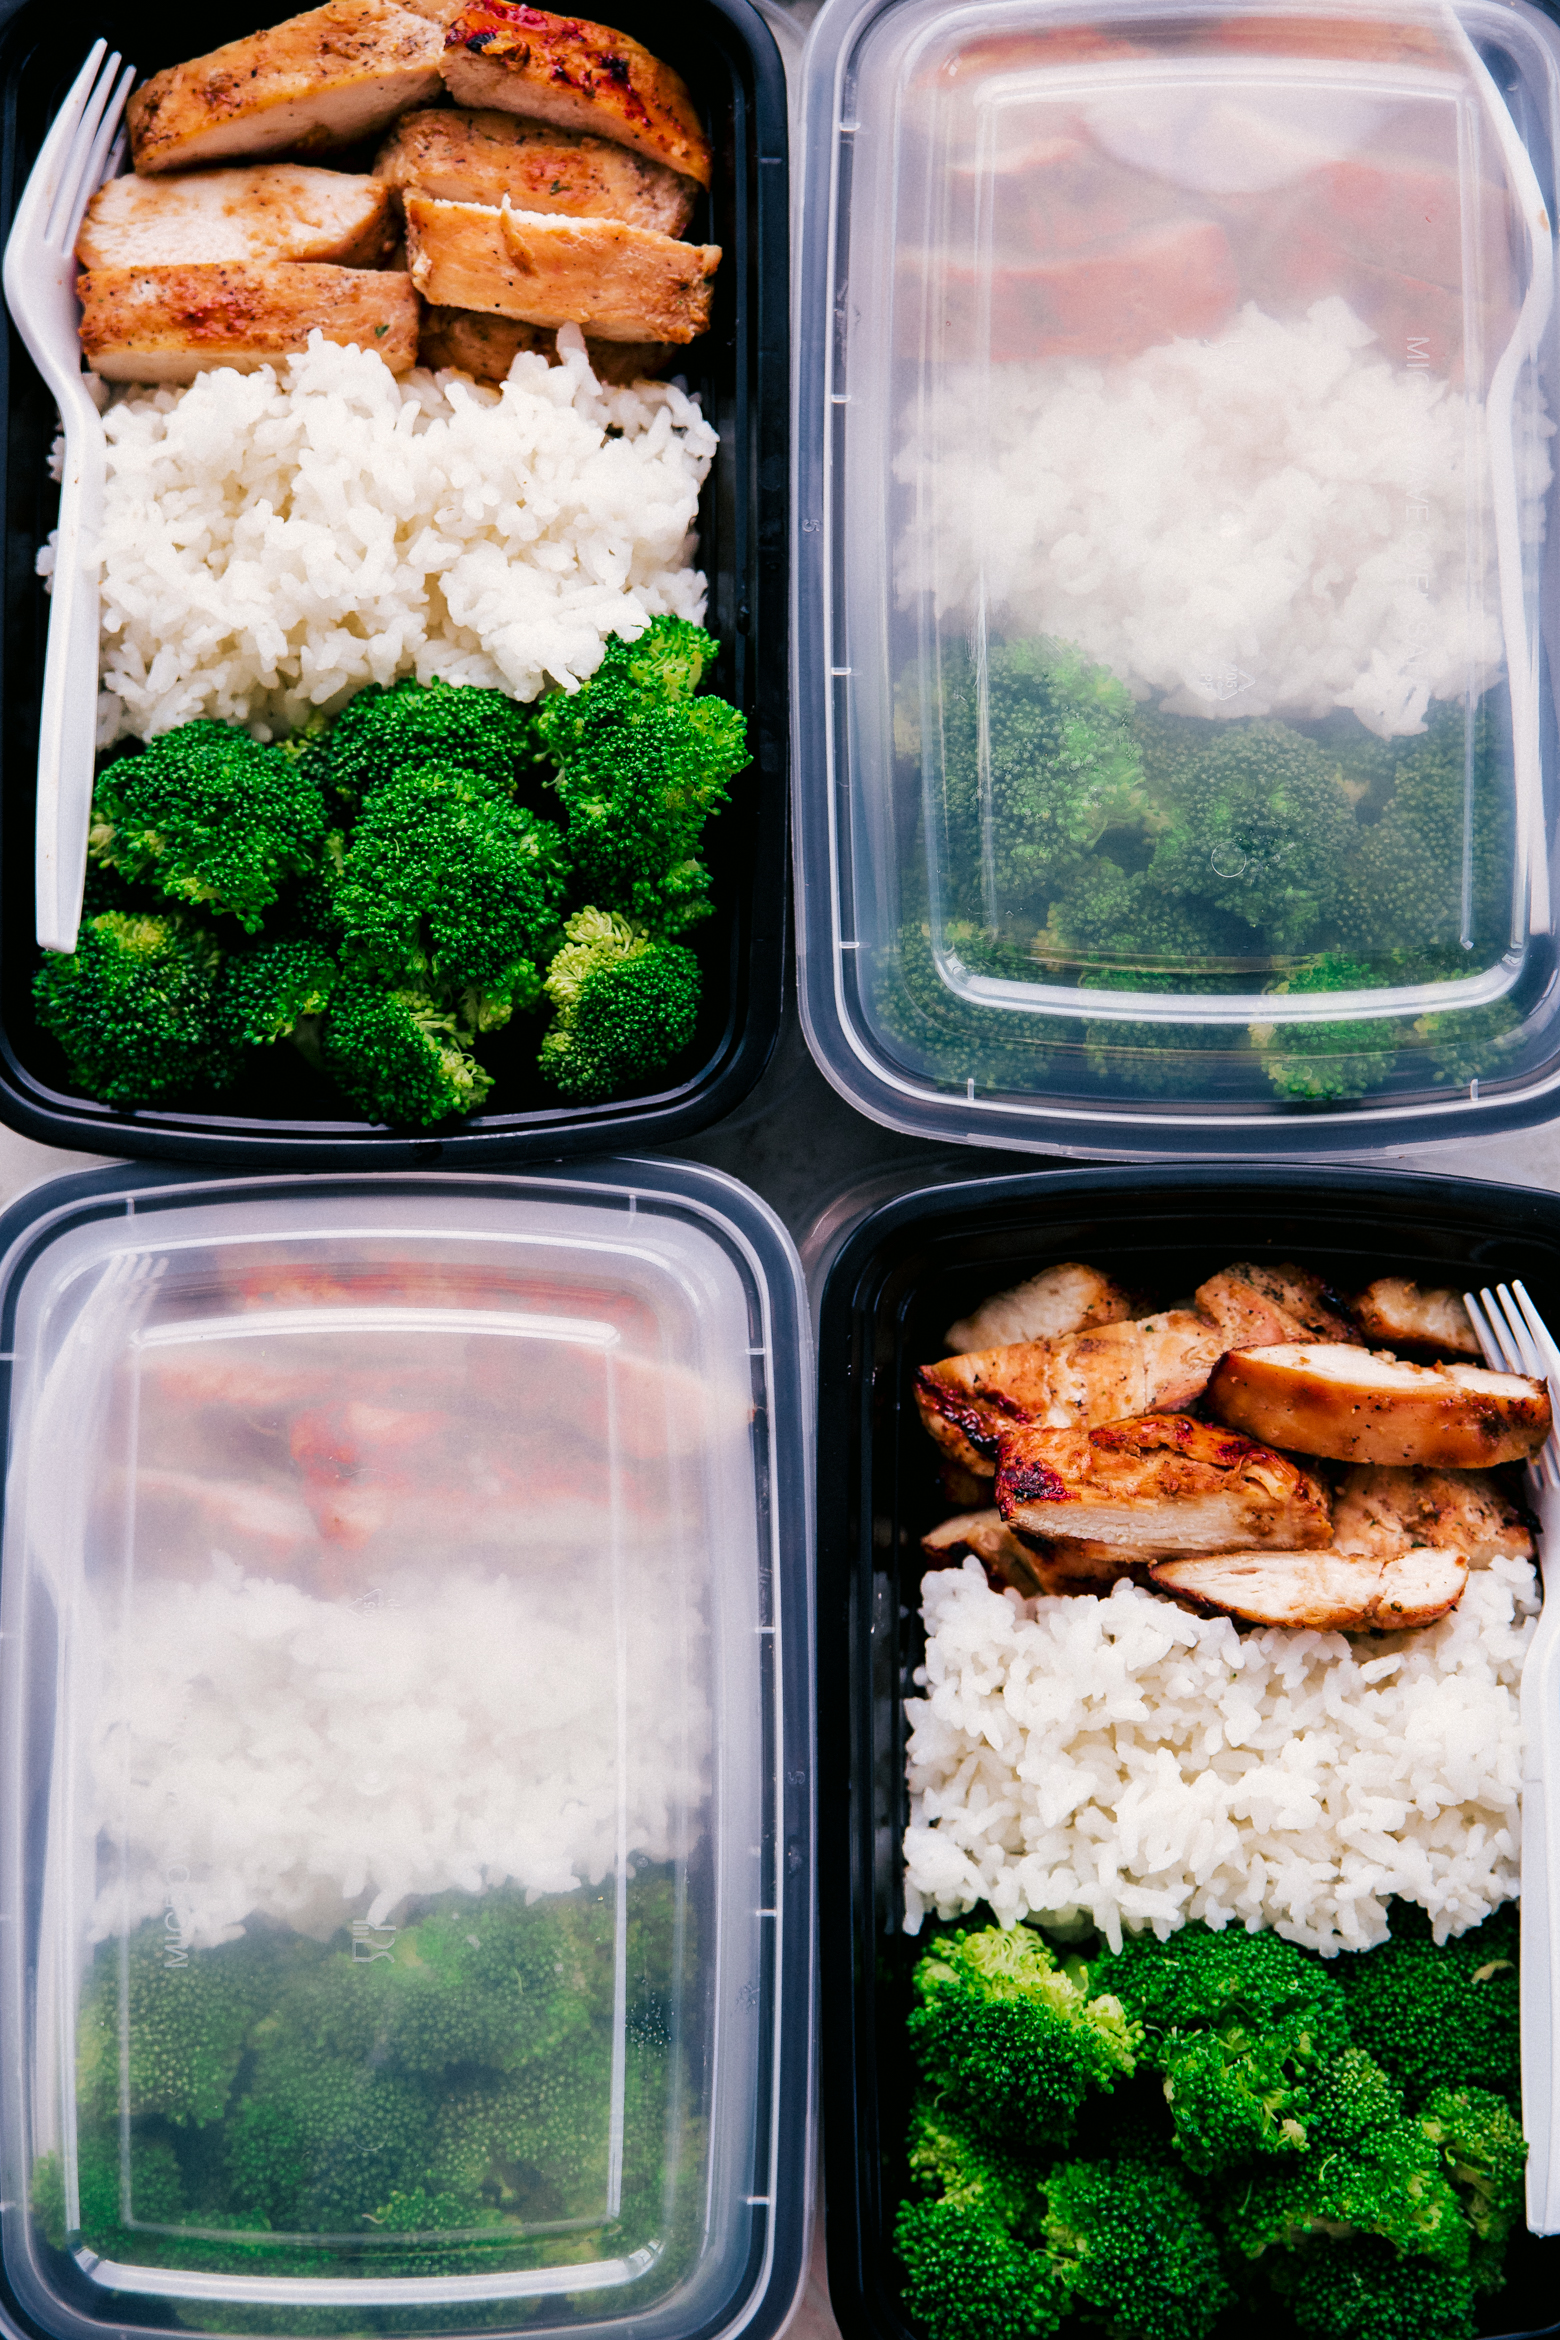 meal prep containers filled with teriyaki chicken, steamed broccoli, and white rice by The Food Cafe.